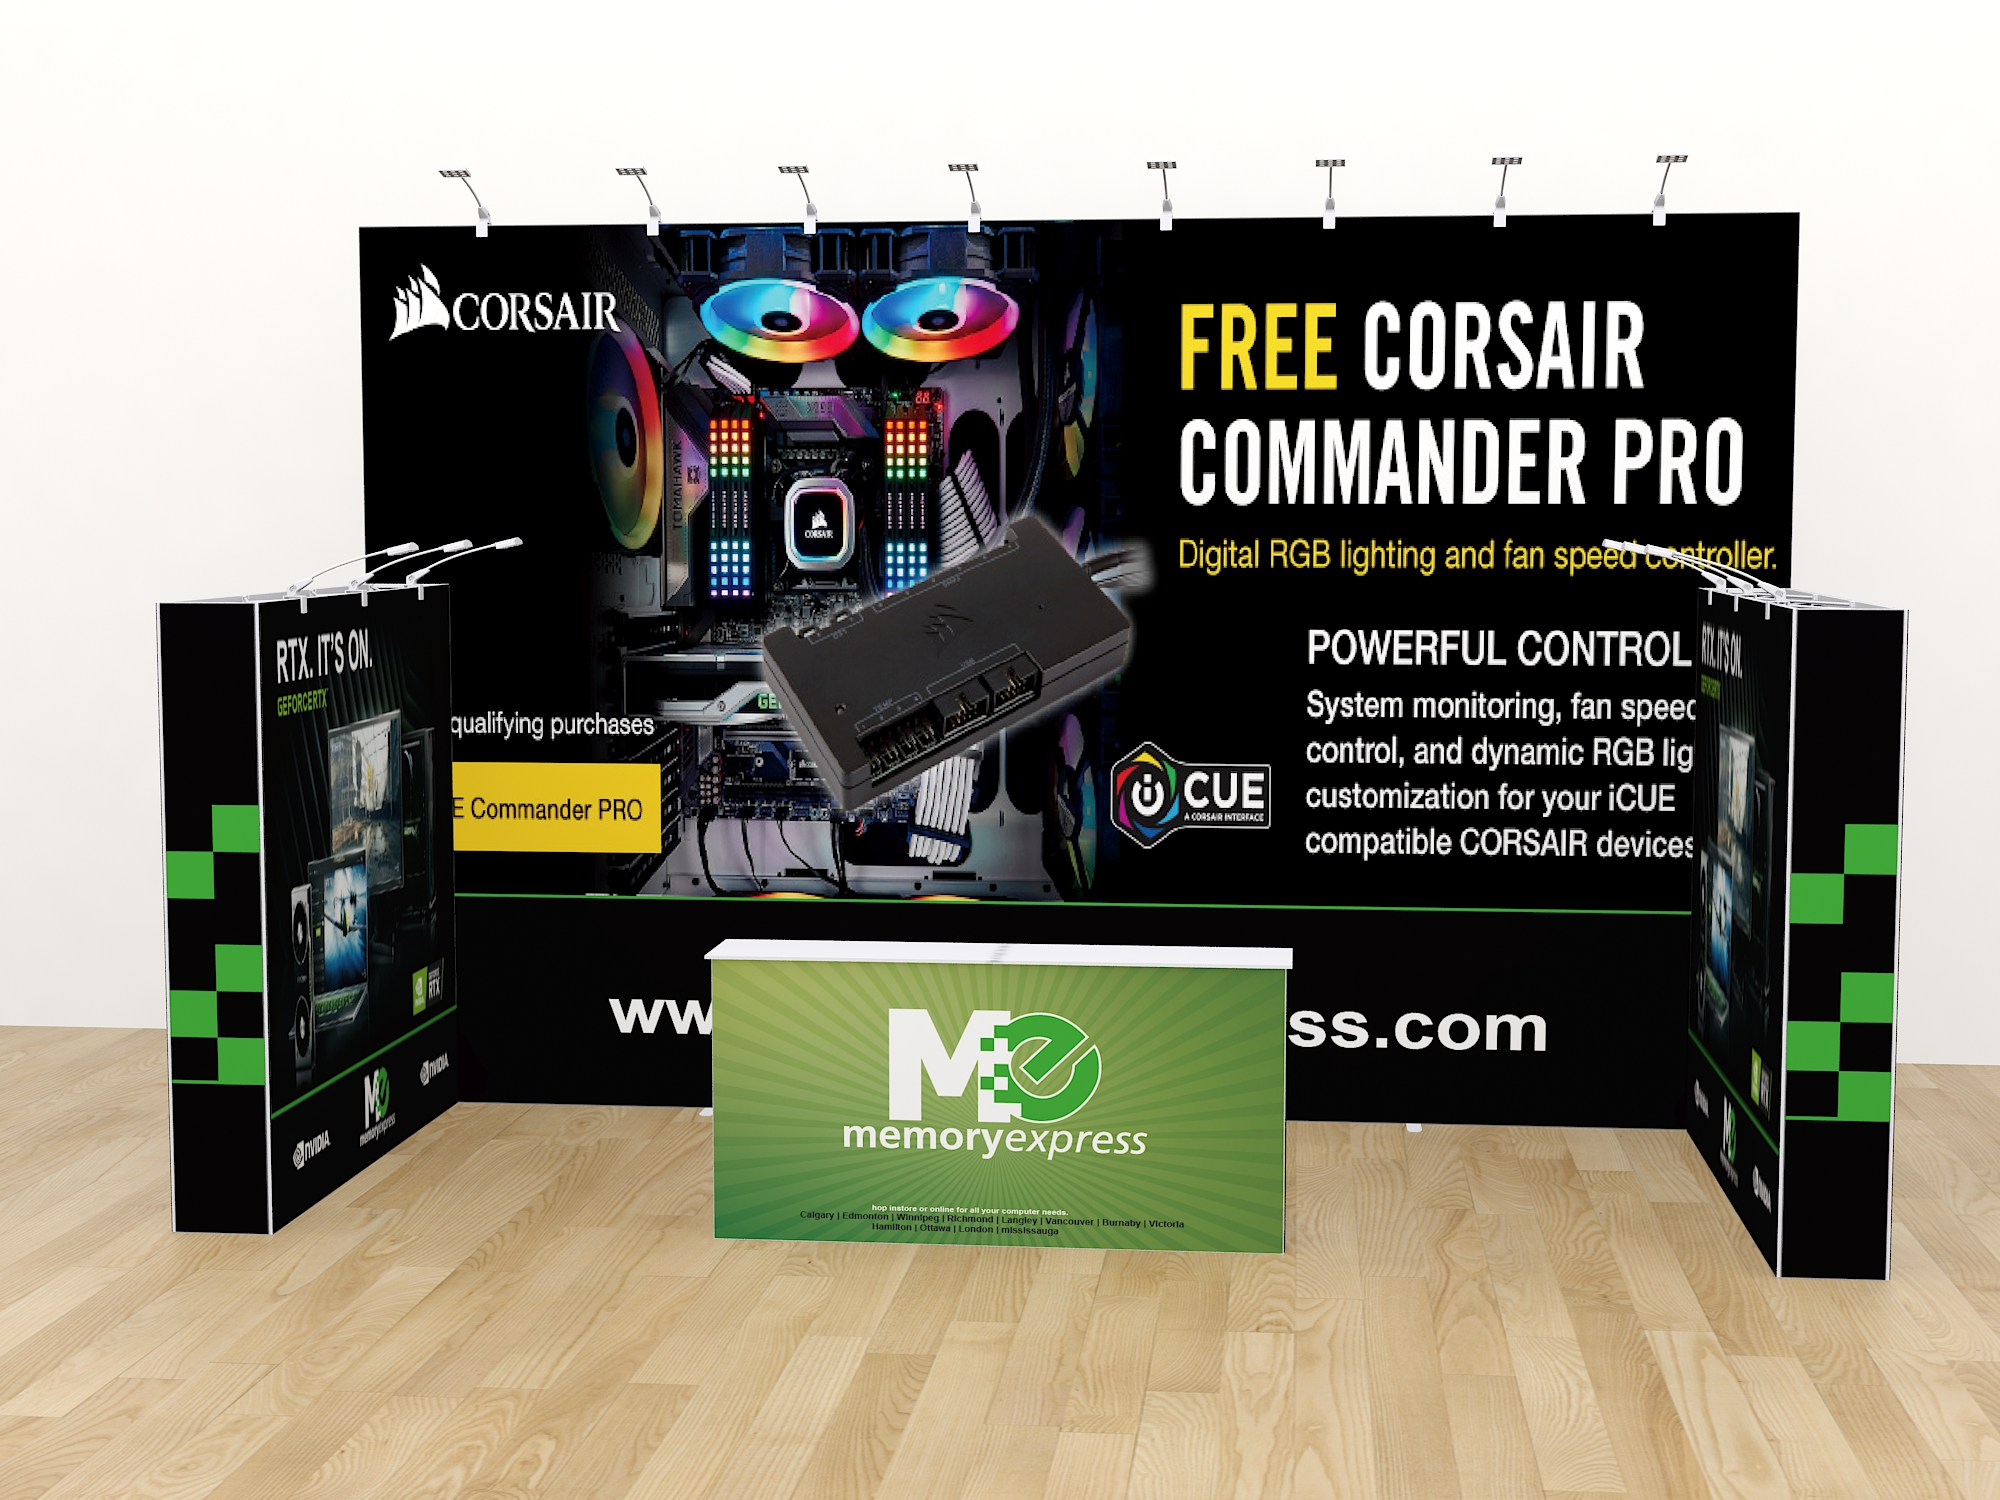 121display Portable tension fabric trade show display 10x10 booth